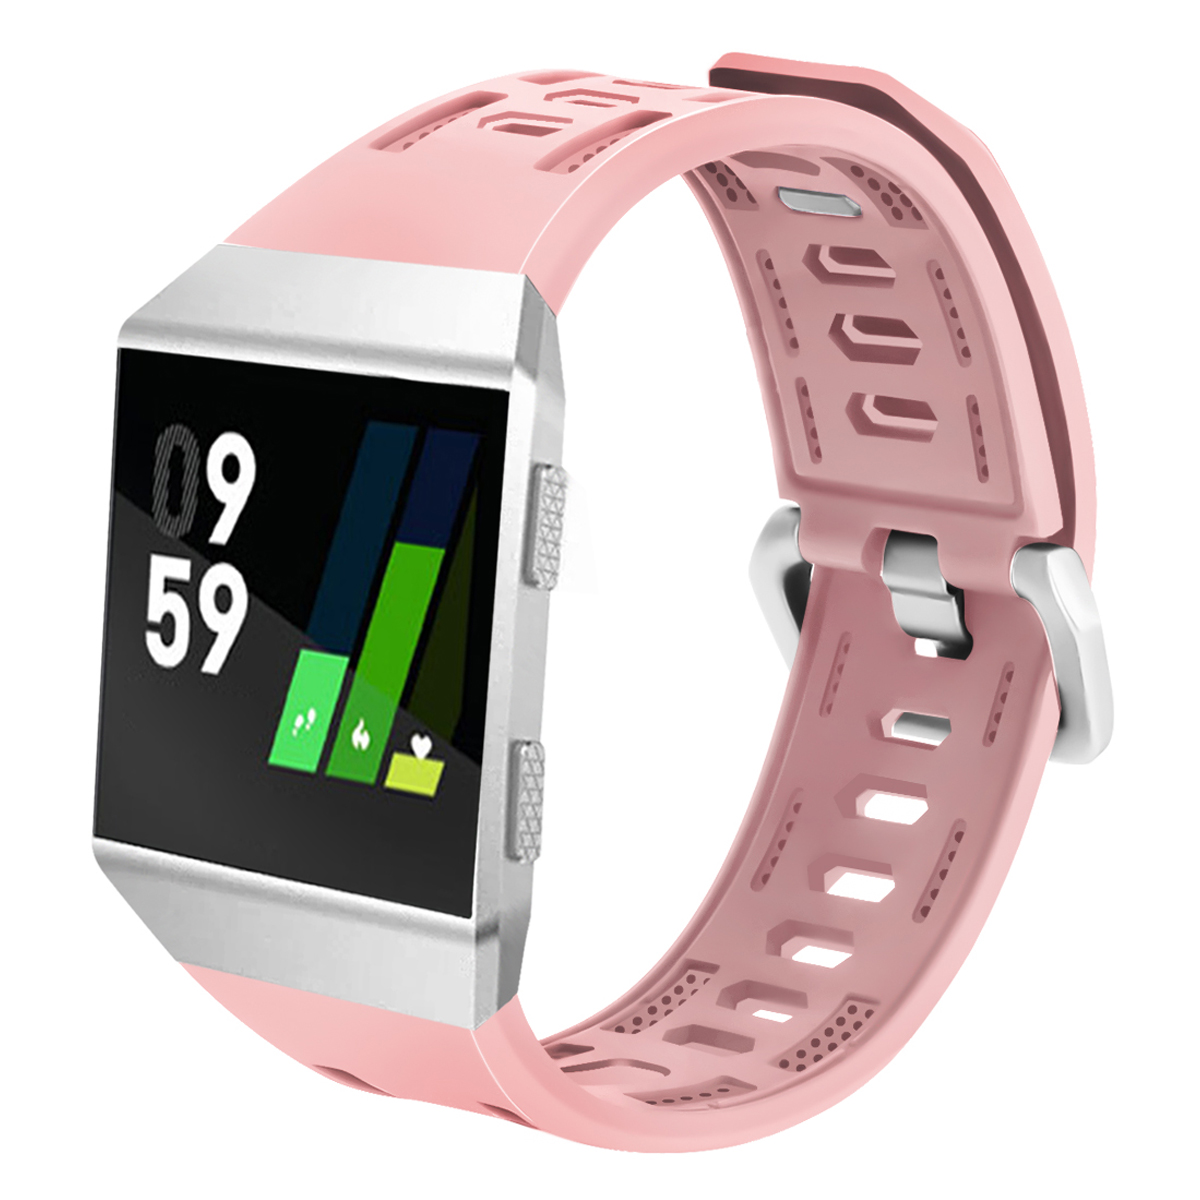 Handodo Fitbit Ionic Band - Soft Silicone Sport Strap Accessories with Ventilation Holes Replacement Wristband Fitbit Band image16